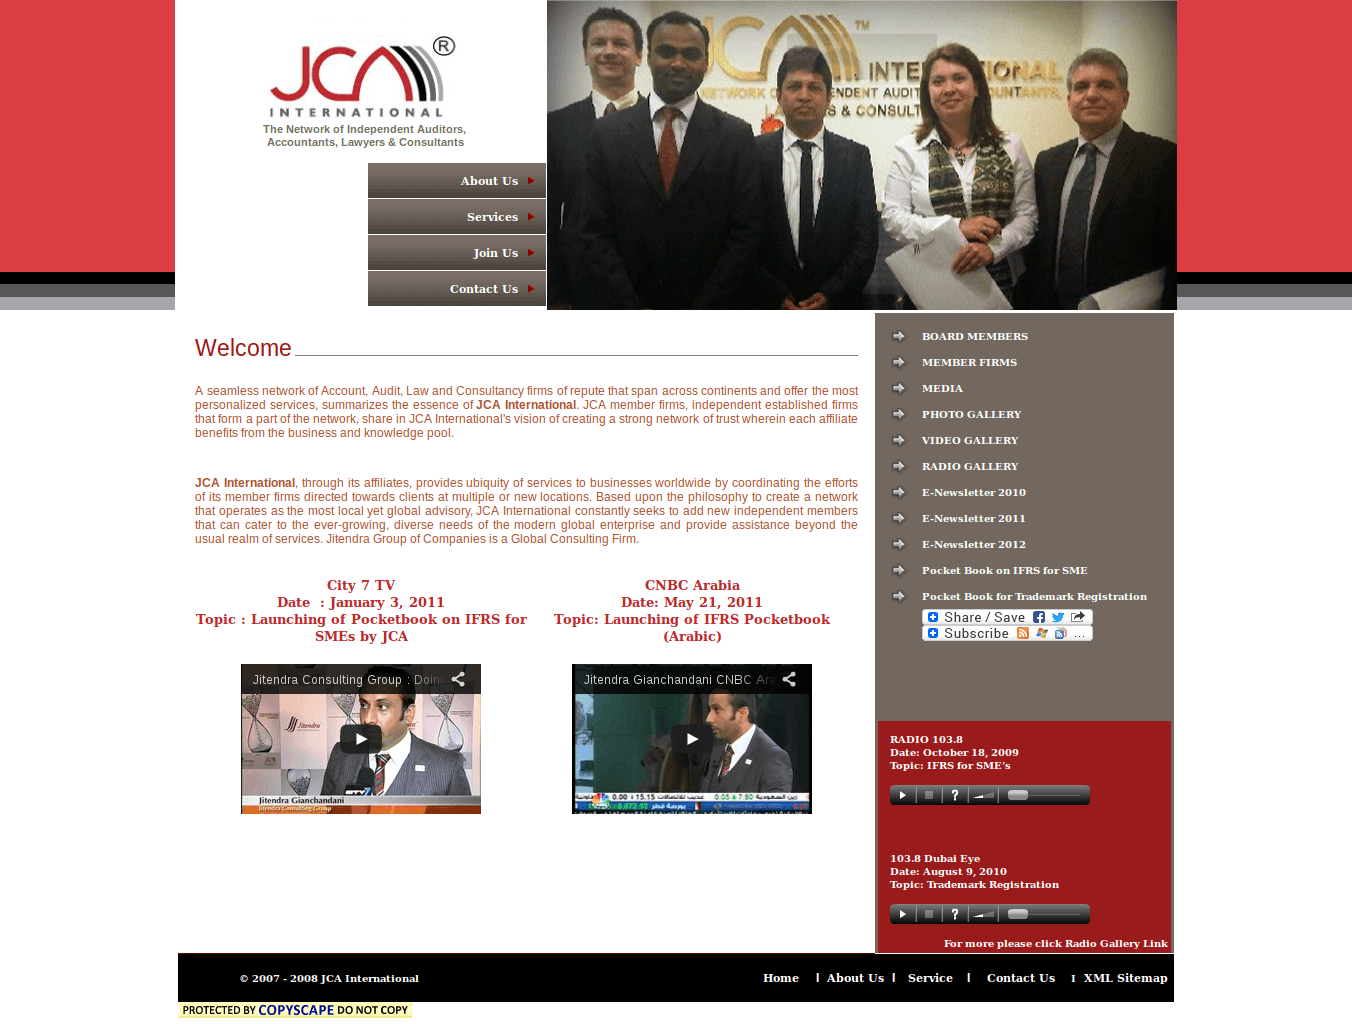 international-network-of-accounting-auditing-lawyers-and-consulting-firms-2016-10-07-11-51-15